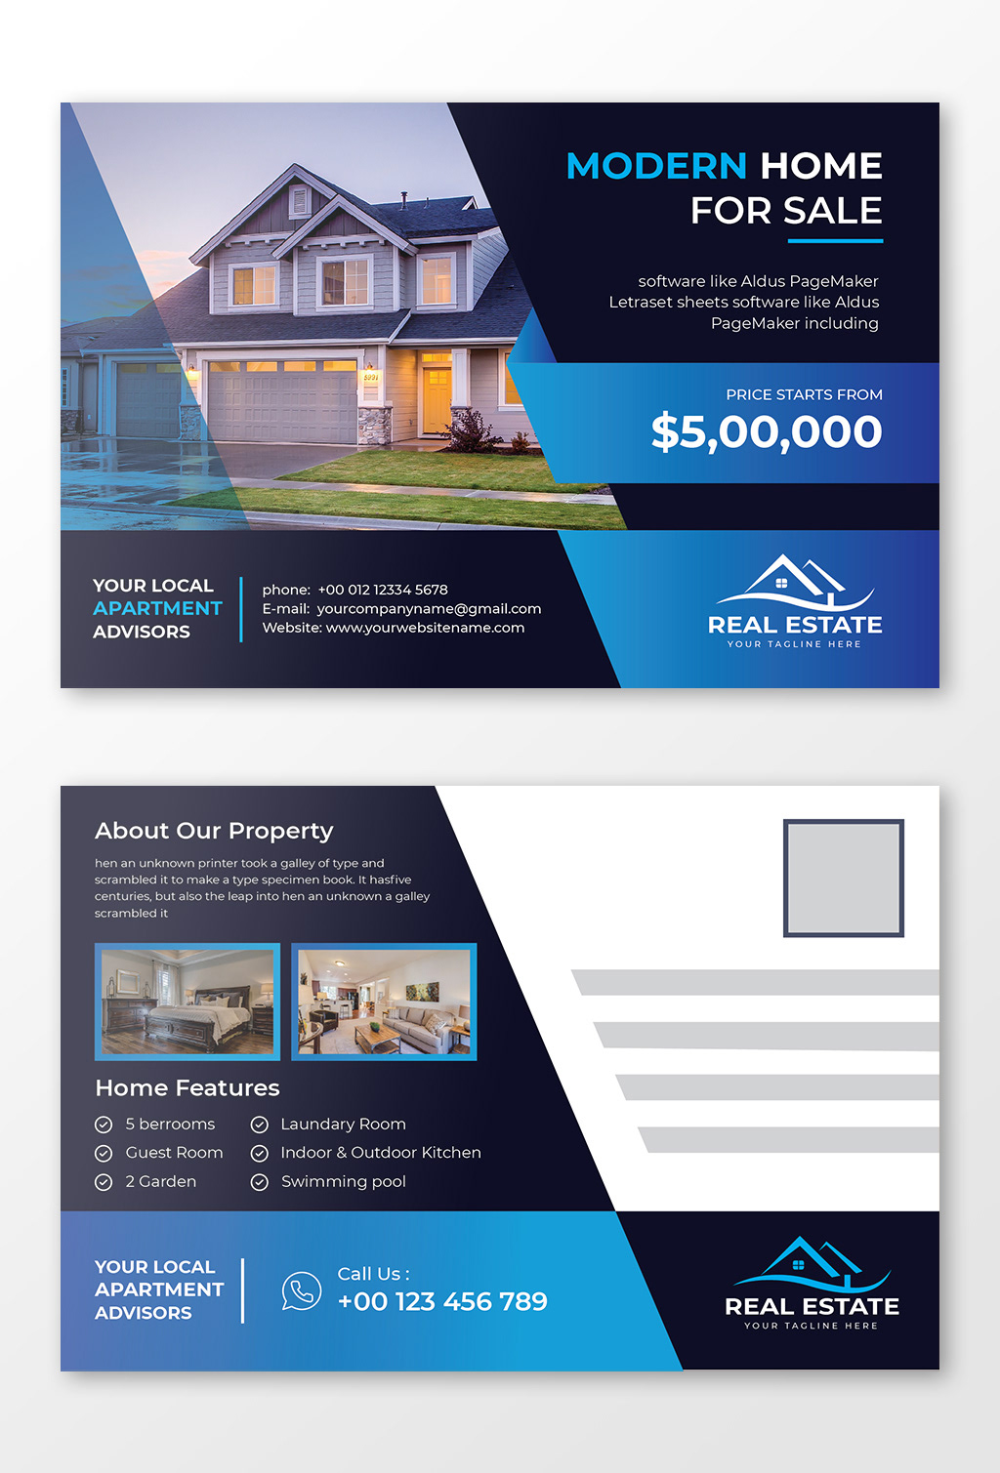 Real Estate Business Eddm Postcard Design Template On Behance Real Estate Postcards Postcard Design Real Estate Business